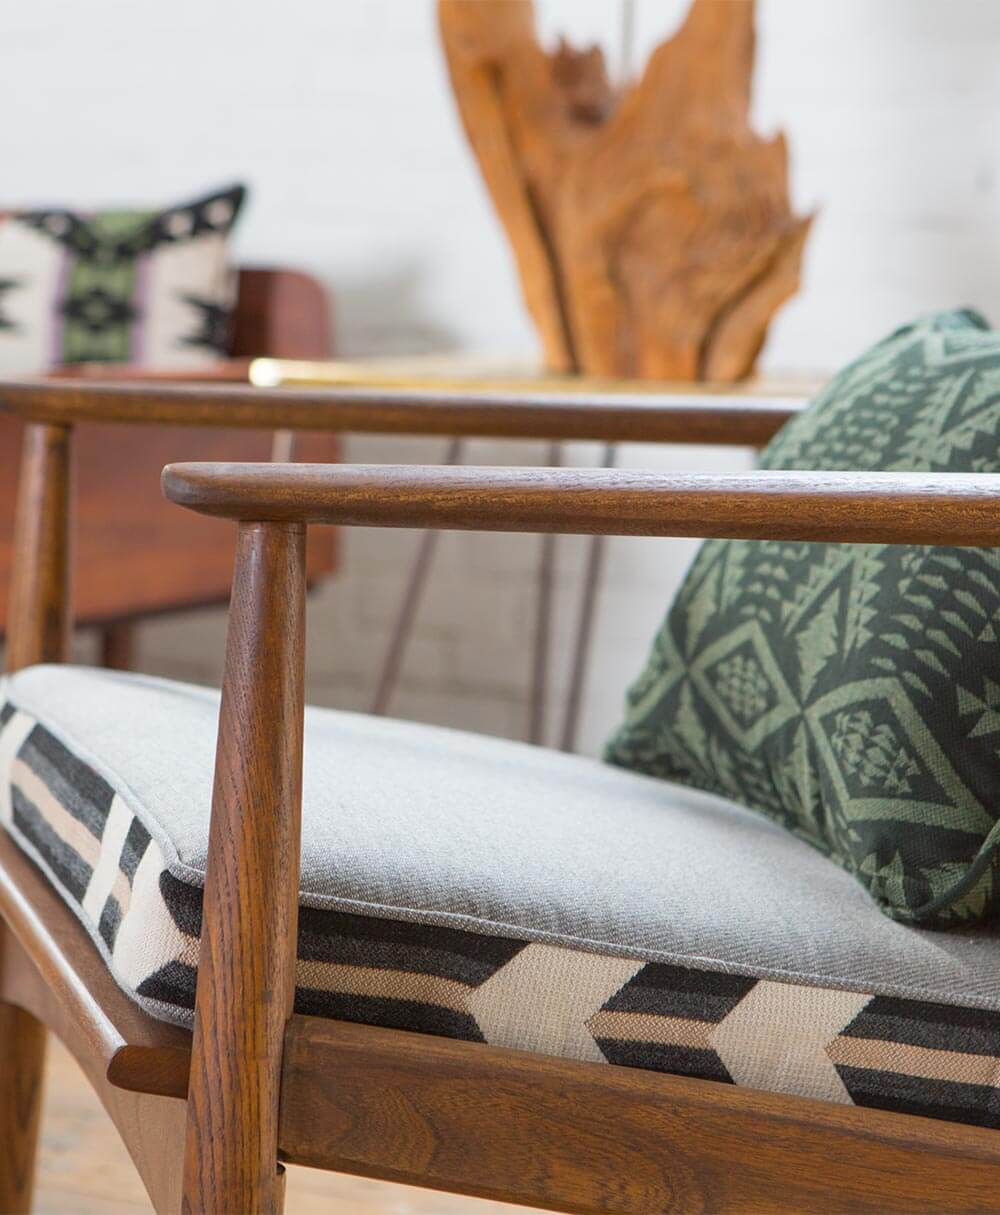 A wooden chair with a grey cushion and green patterned pillow, made using Pendleton by Sunbrella upholstery fabrics.